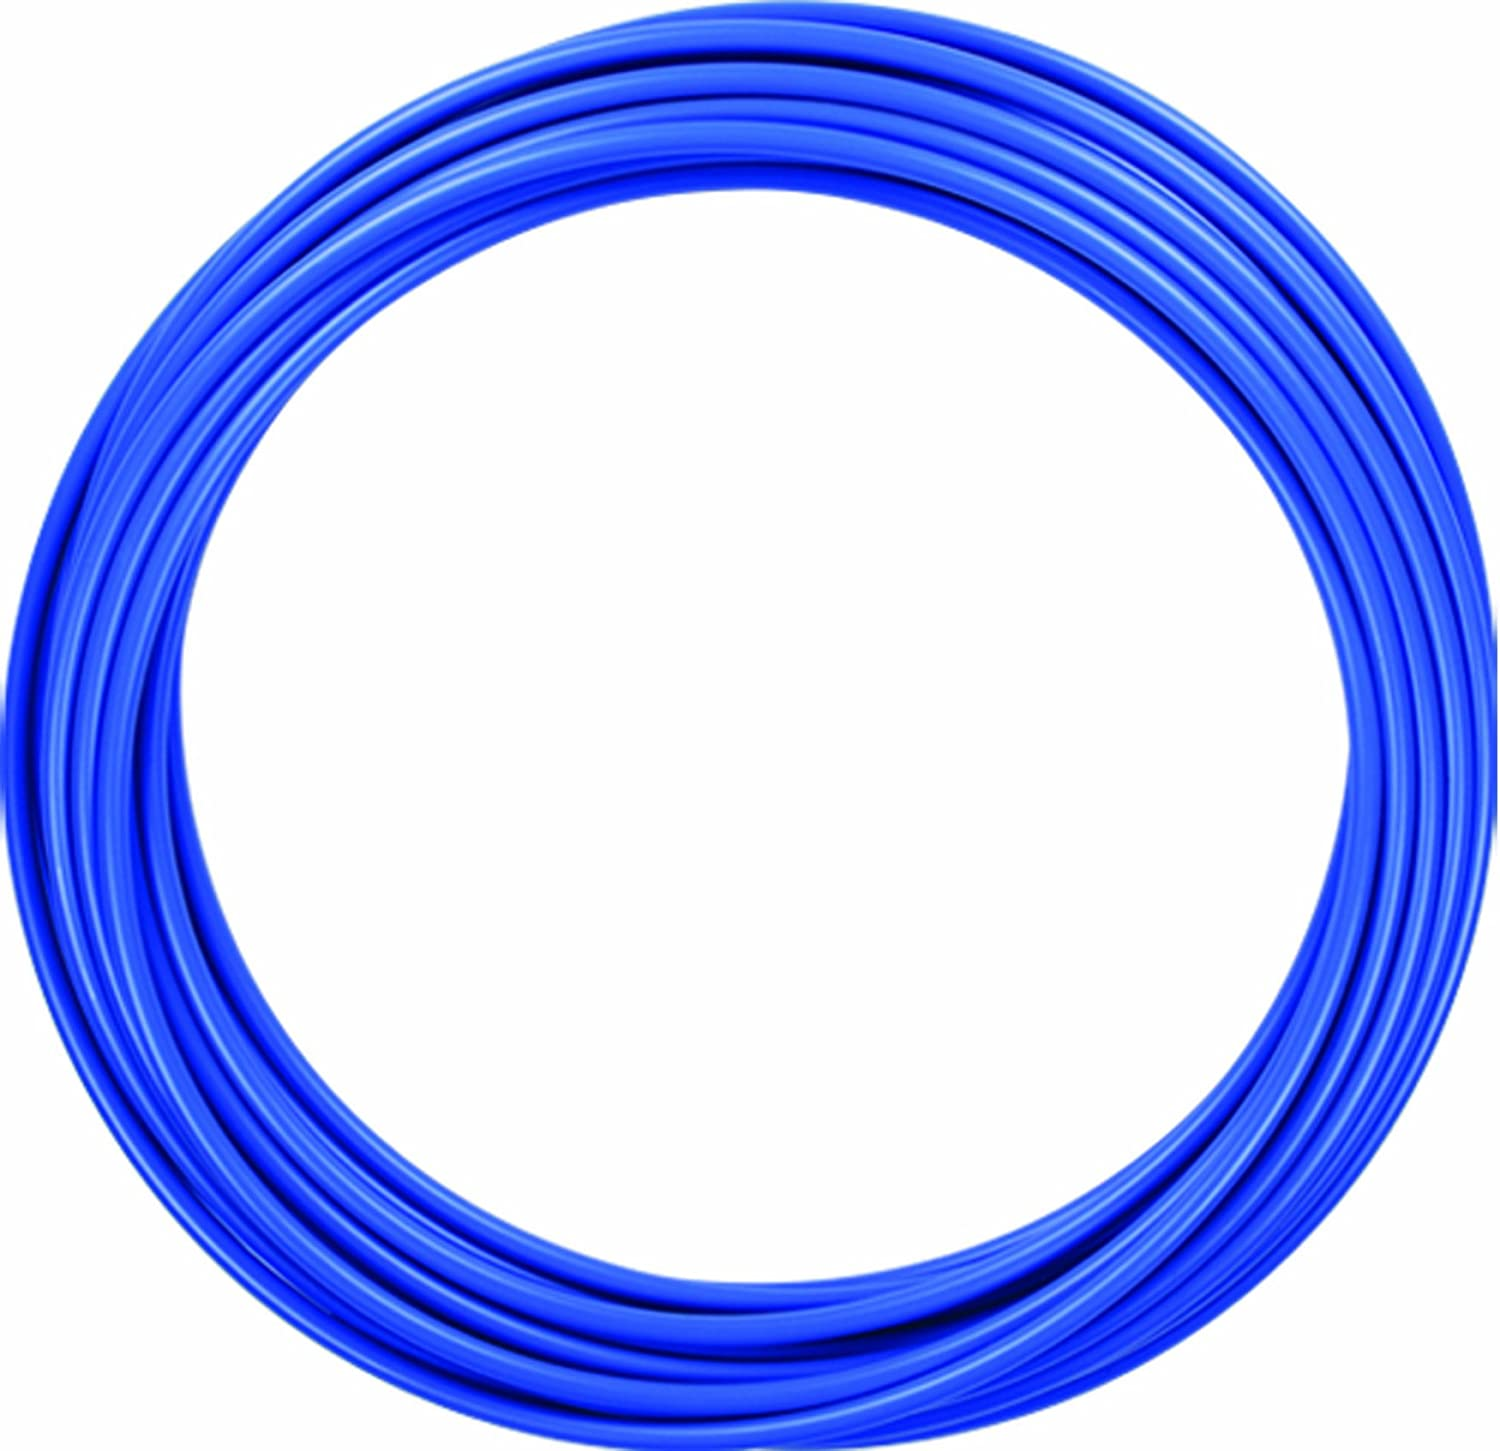 Viega 32641 PureFlow Zero Lead ViegaPEX Tubing with Ultra Blue Coil of Length 3//4-Inch by 100-Feet